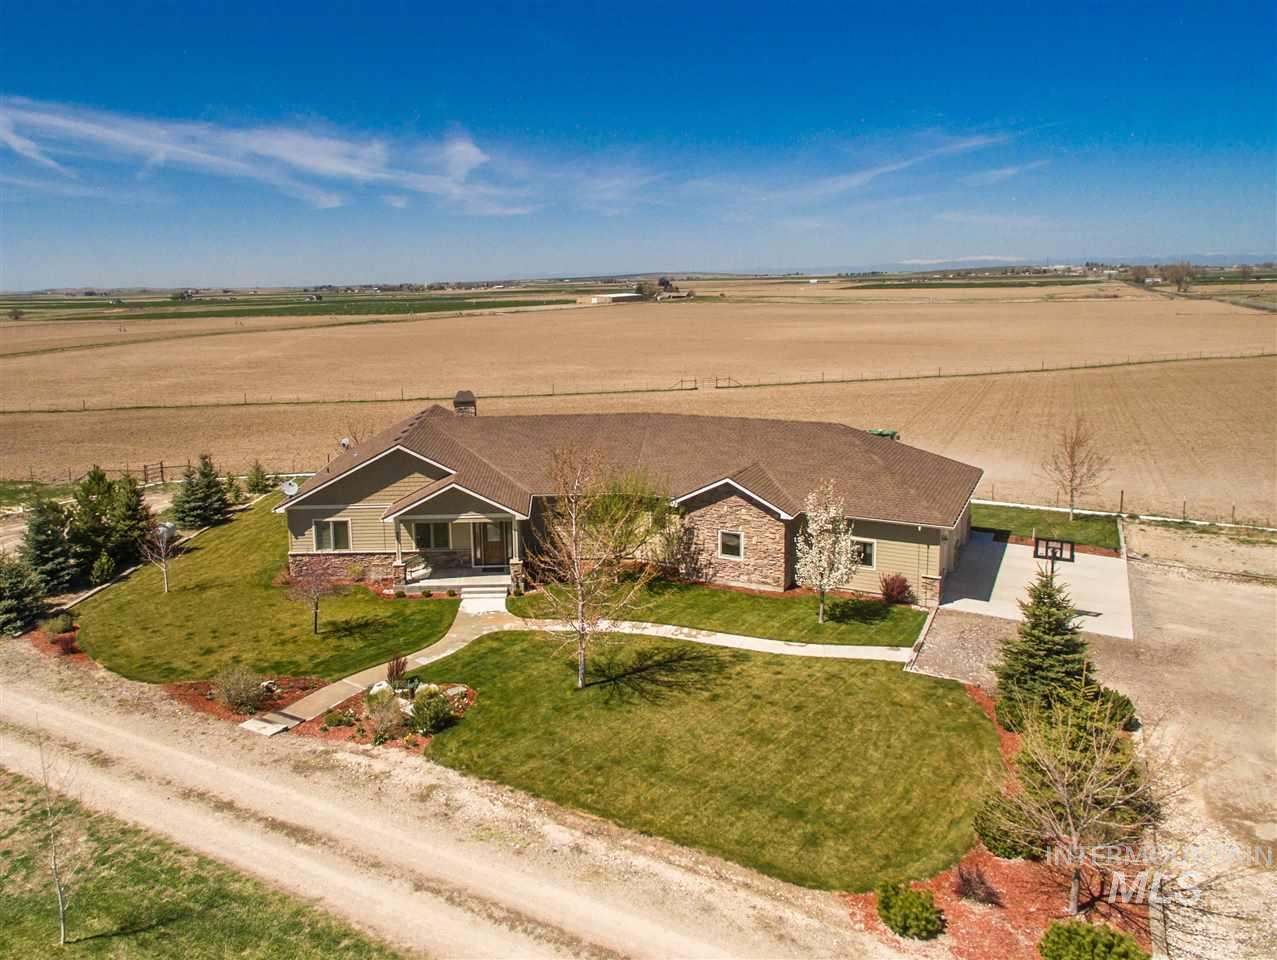 Idaho Homes On Acreage 50 To 100 Acres Stacey Budell